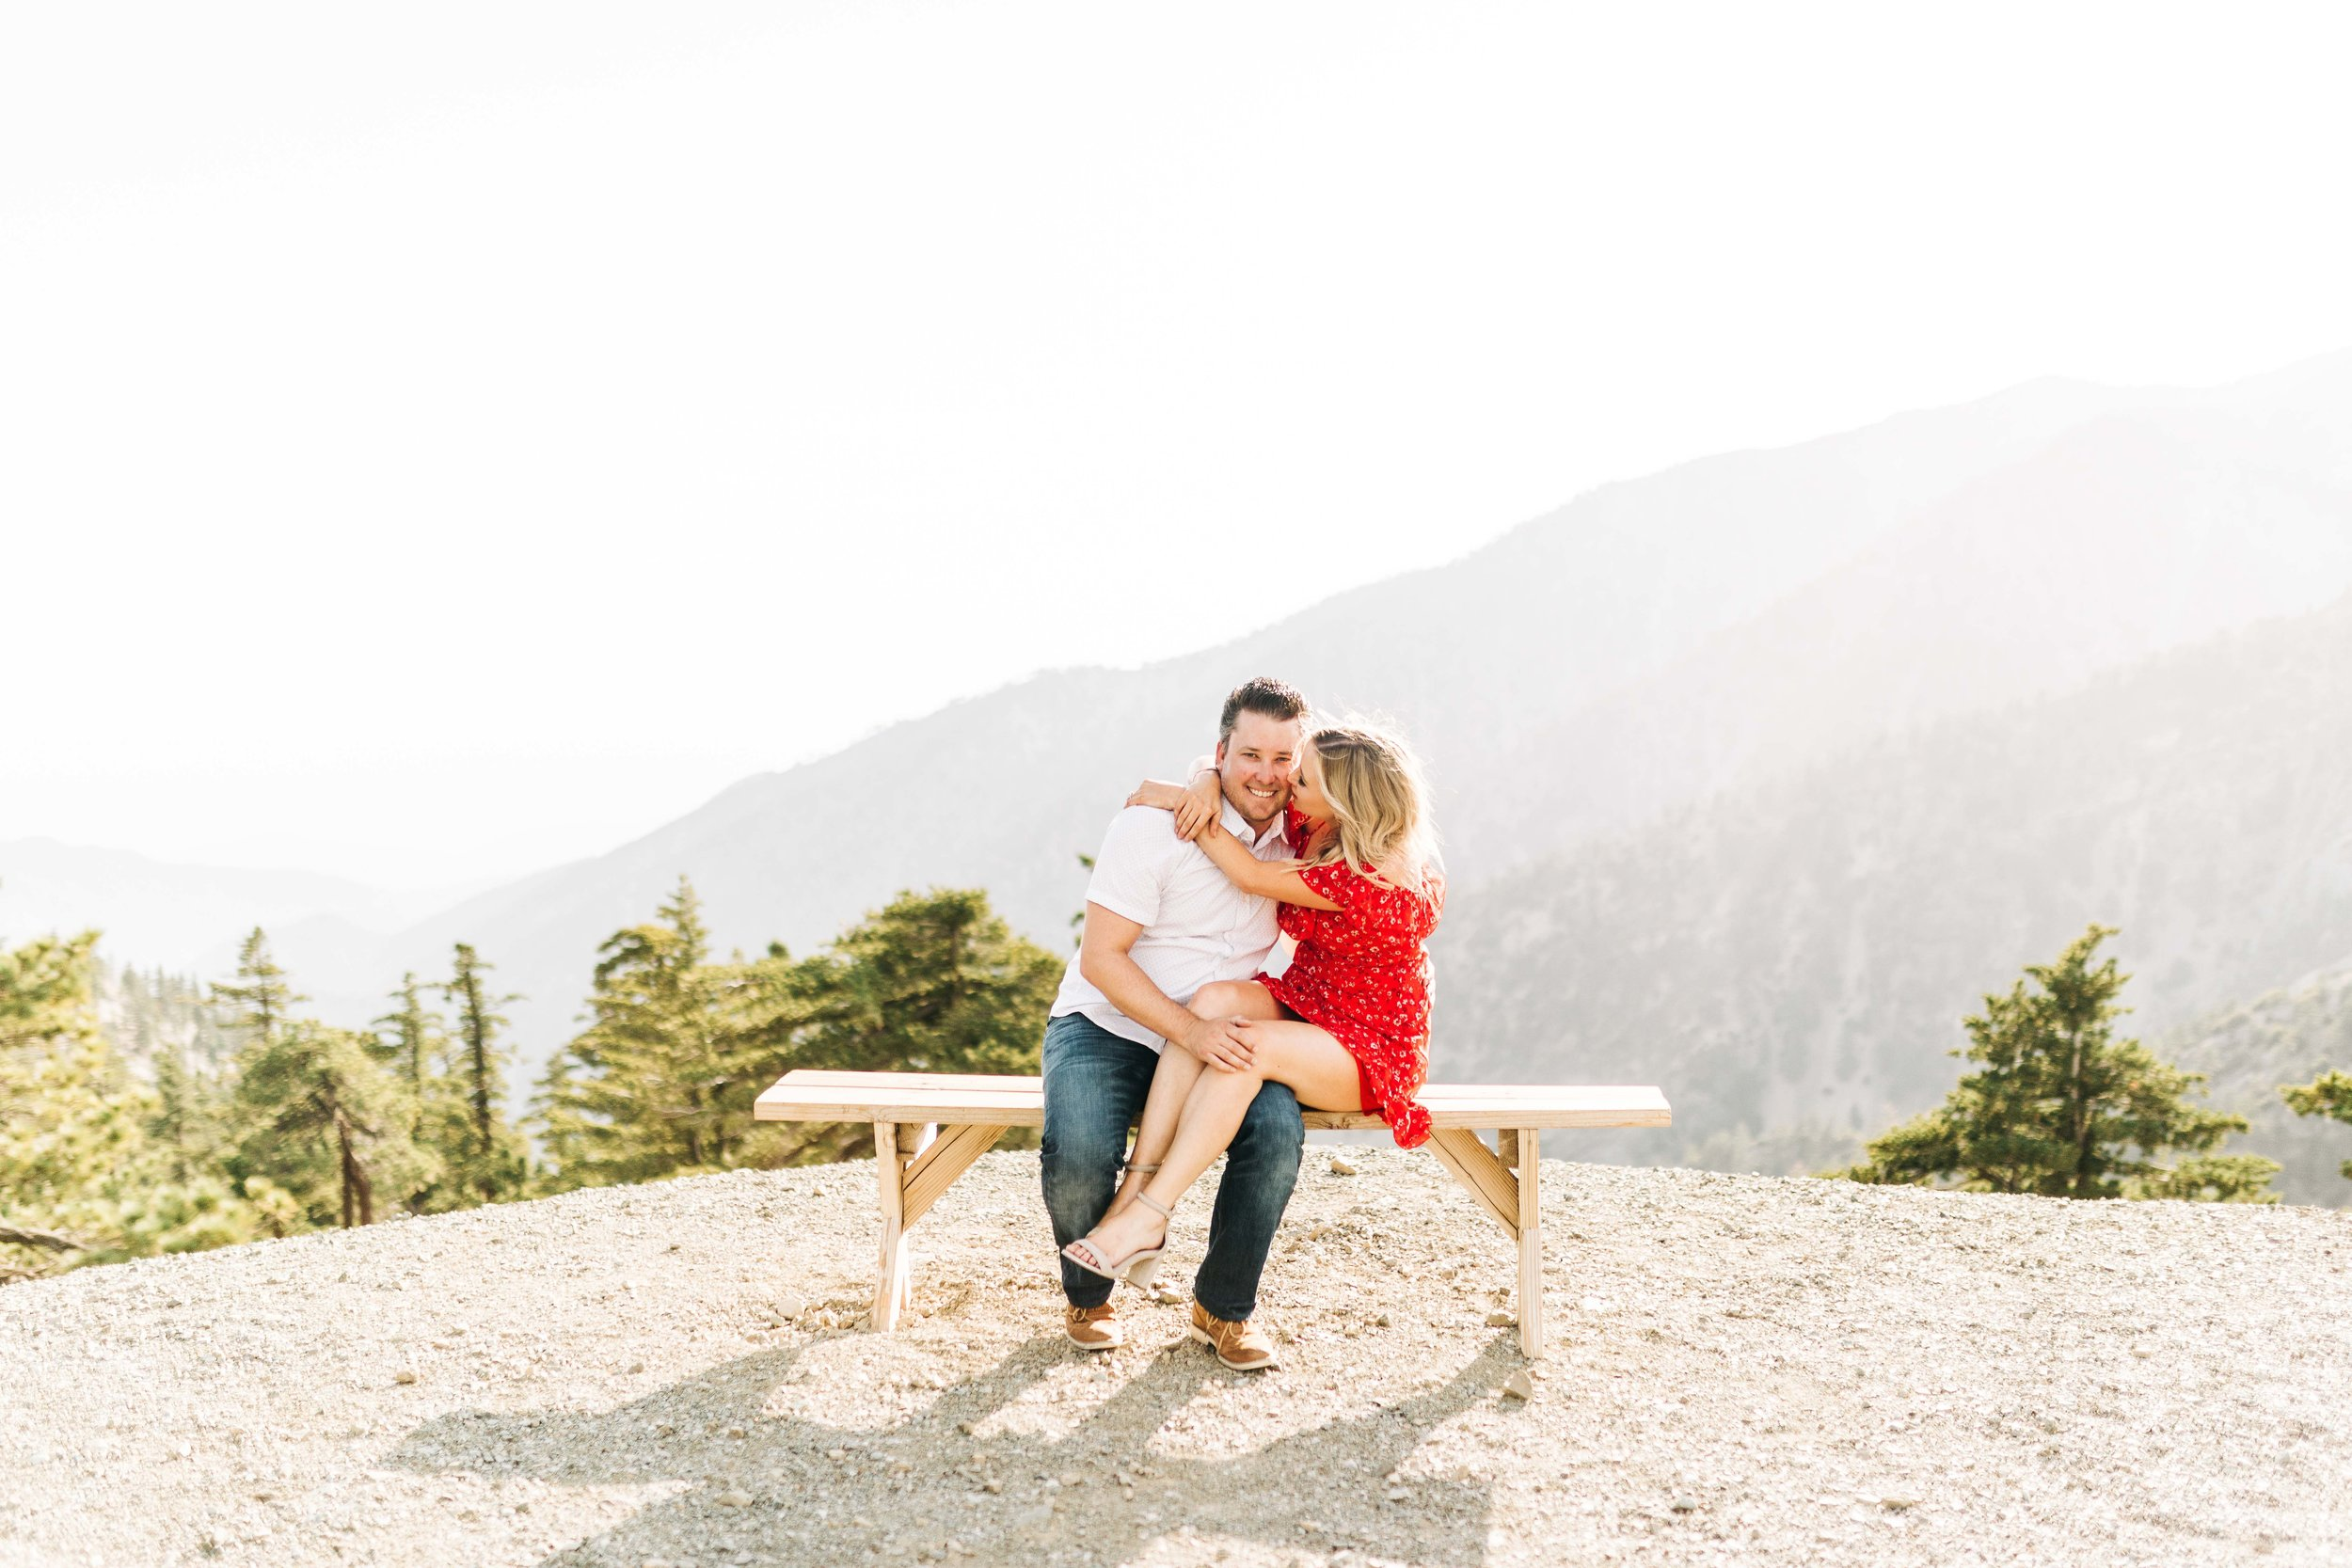 Rachael&Keith-Mt-Mount-Baldy-Engagement-Photos-Clarisse-Rae-Southern-California-Wedding-Photographer_5